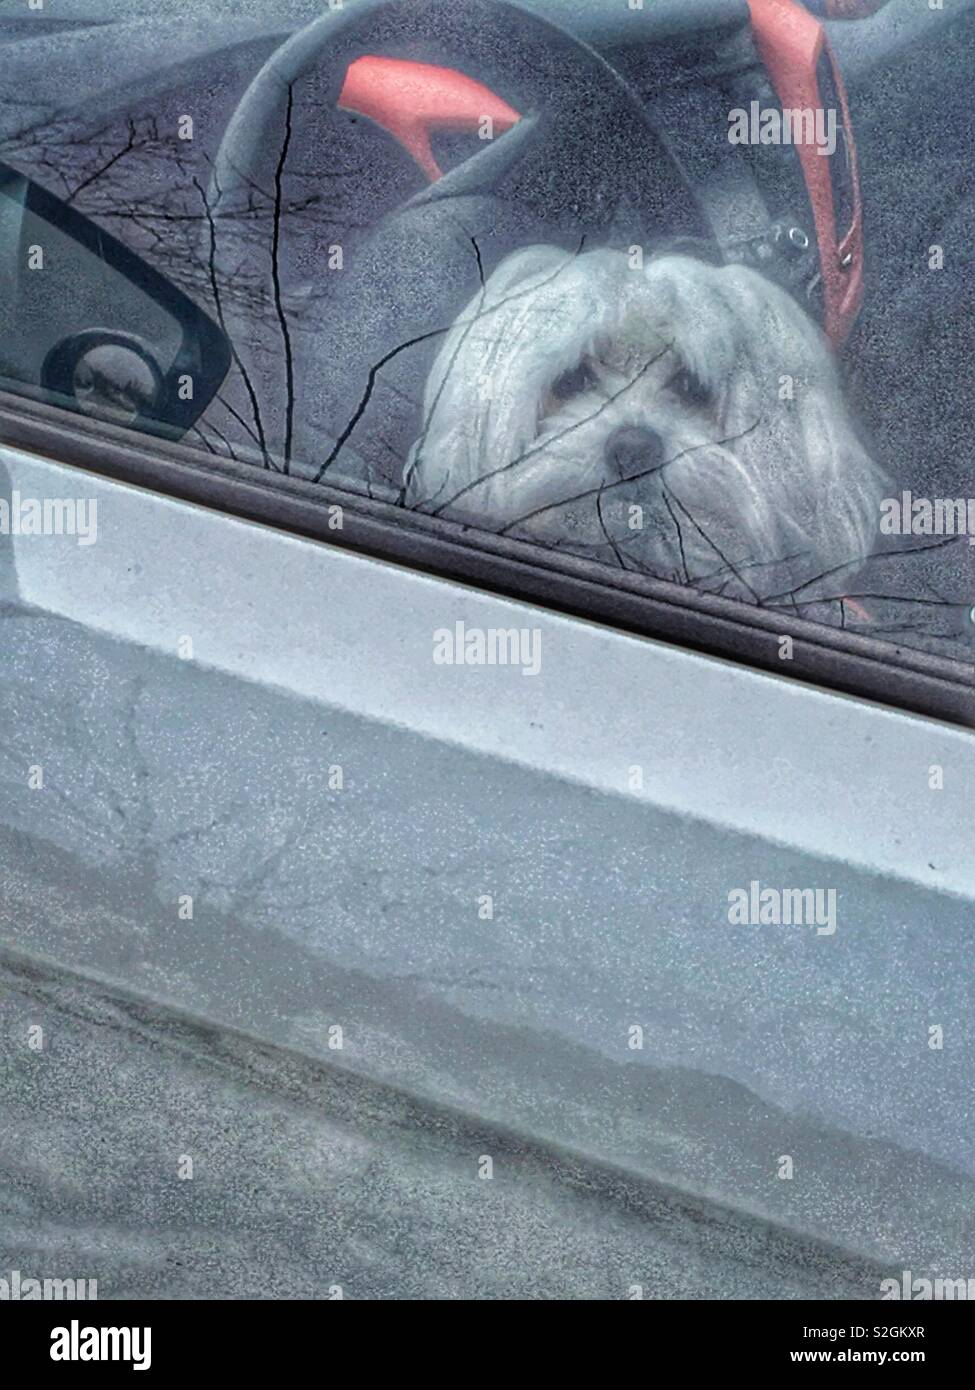 Puppy patiently waiting for their owners return, winter's reflection in the car's door and window - Stock Image